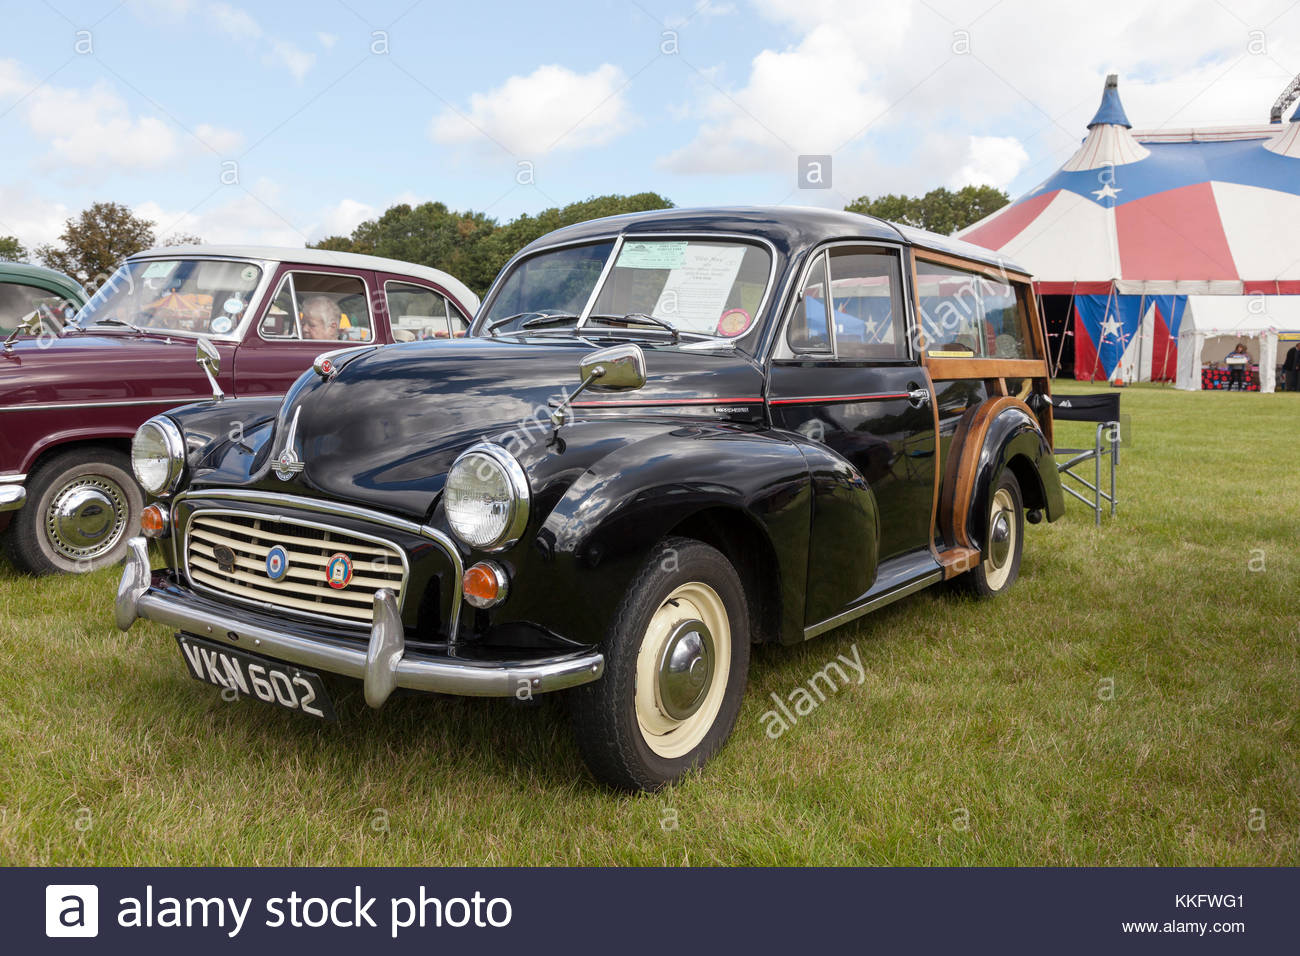 1955 Morris Minor Traveller - Stock Image